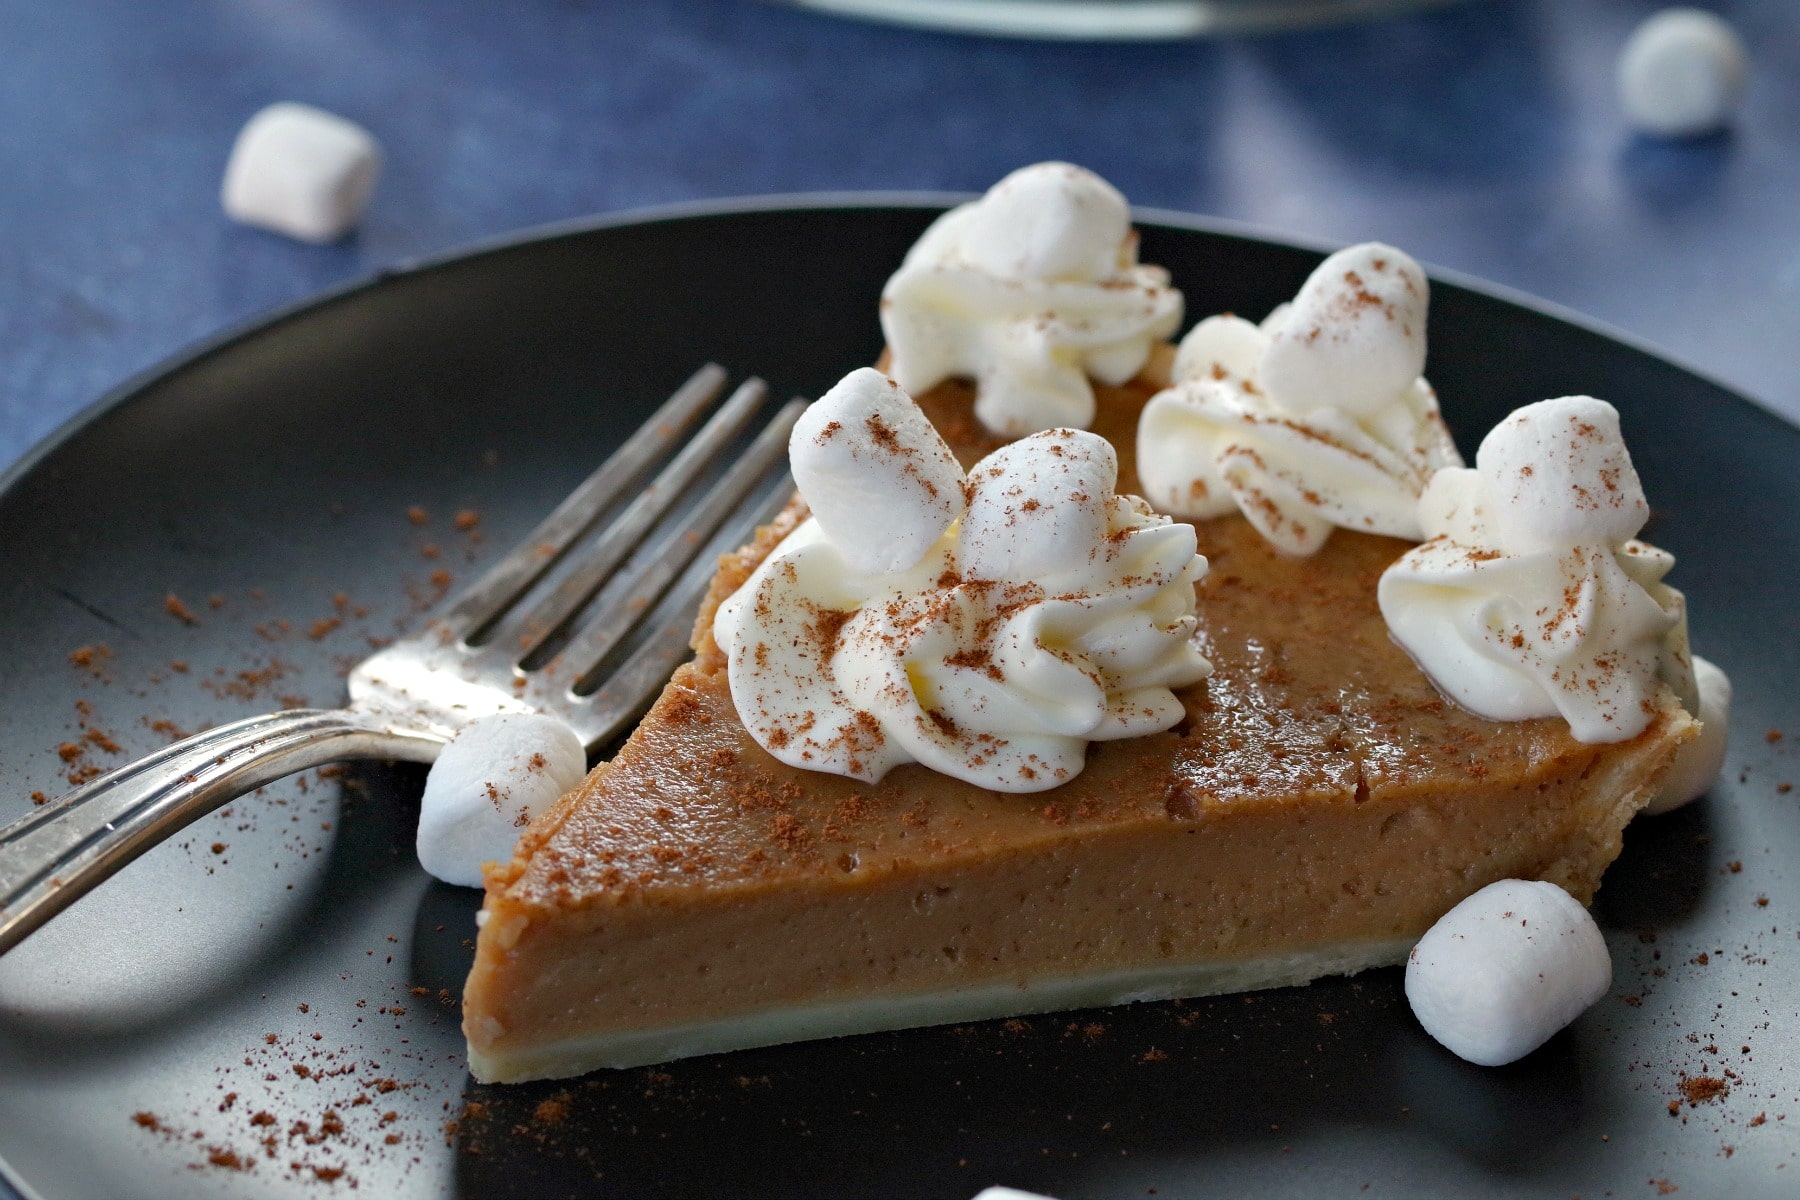 sweet potato pie on black plate on blue background with marshmallows around